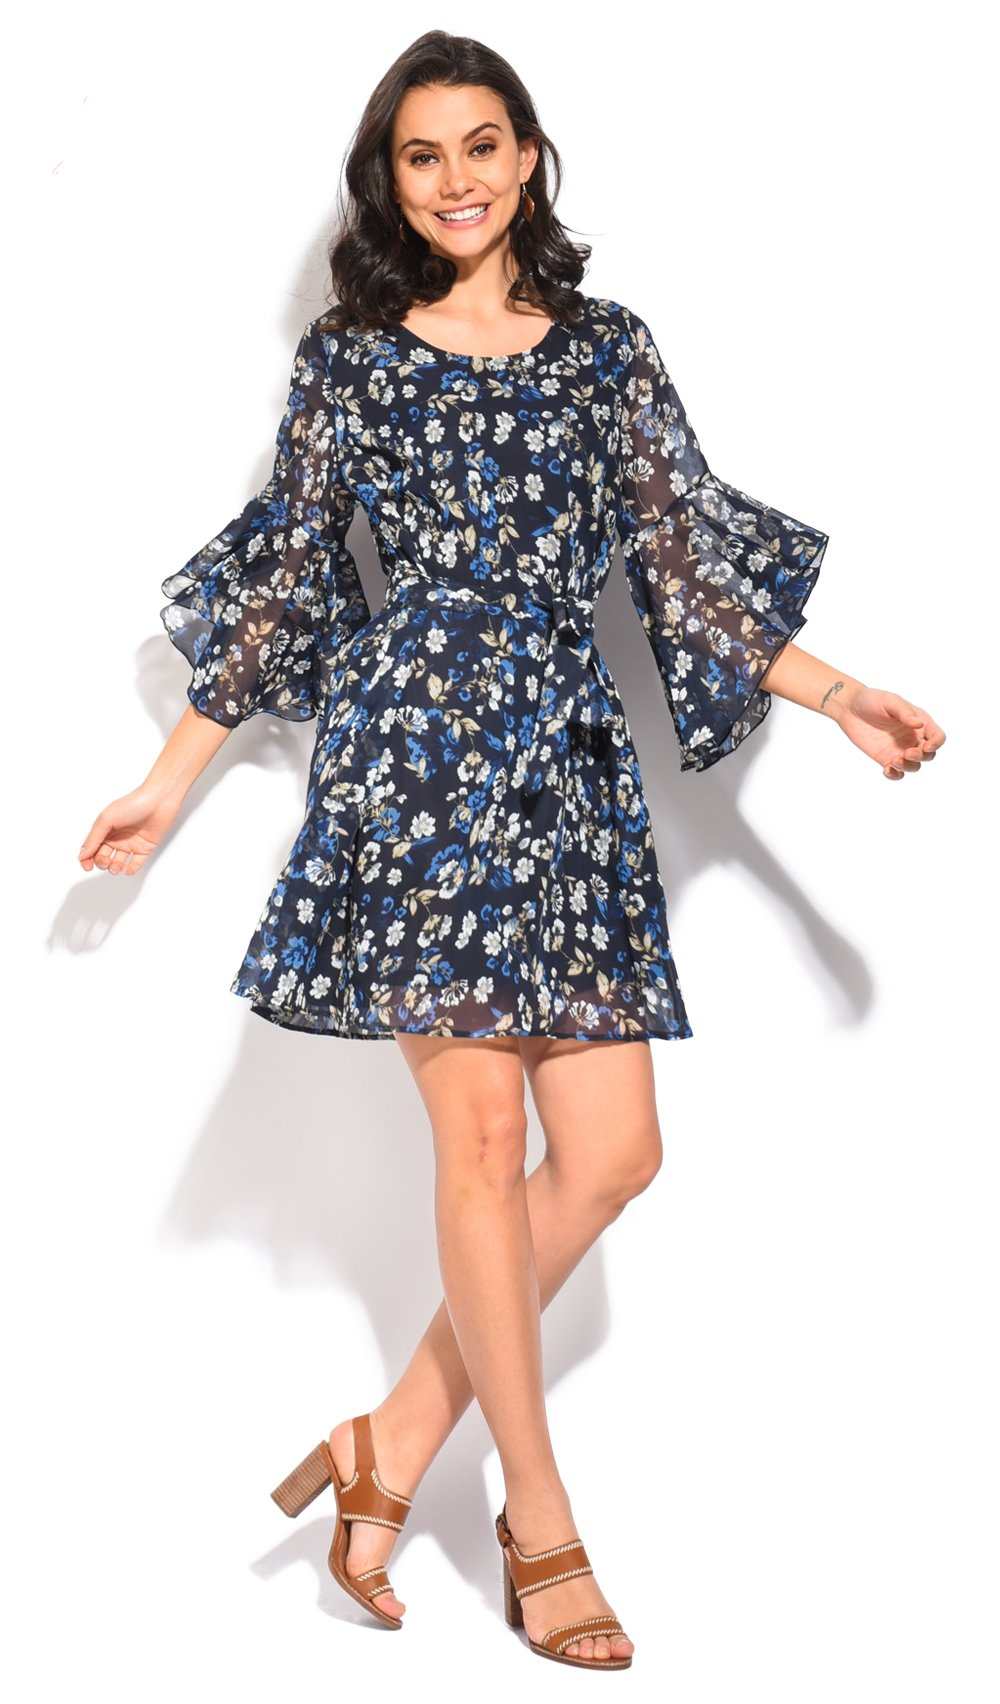 SHORT TRANSPARENT DRESS WITH LIBERTY PRINT AND HALF RUFFLED SLEEVES